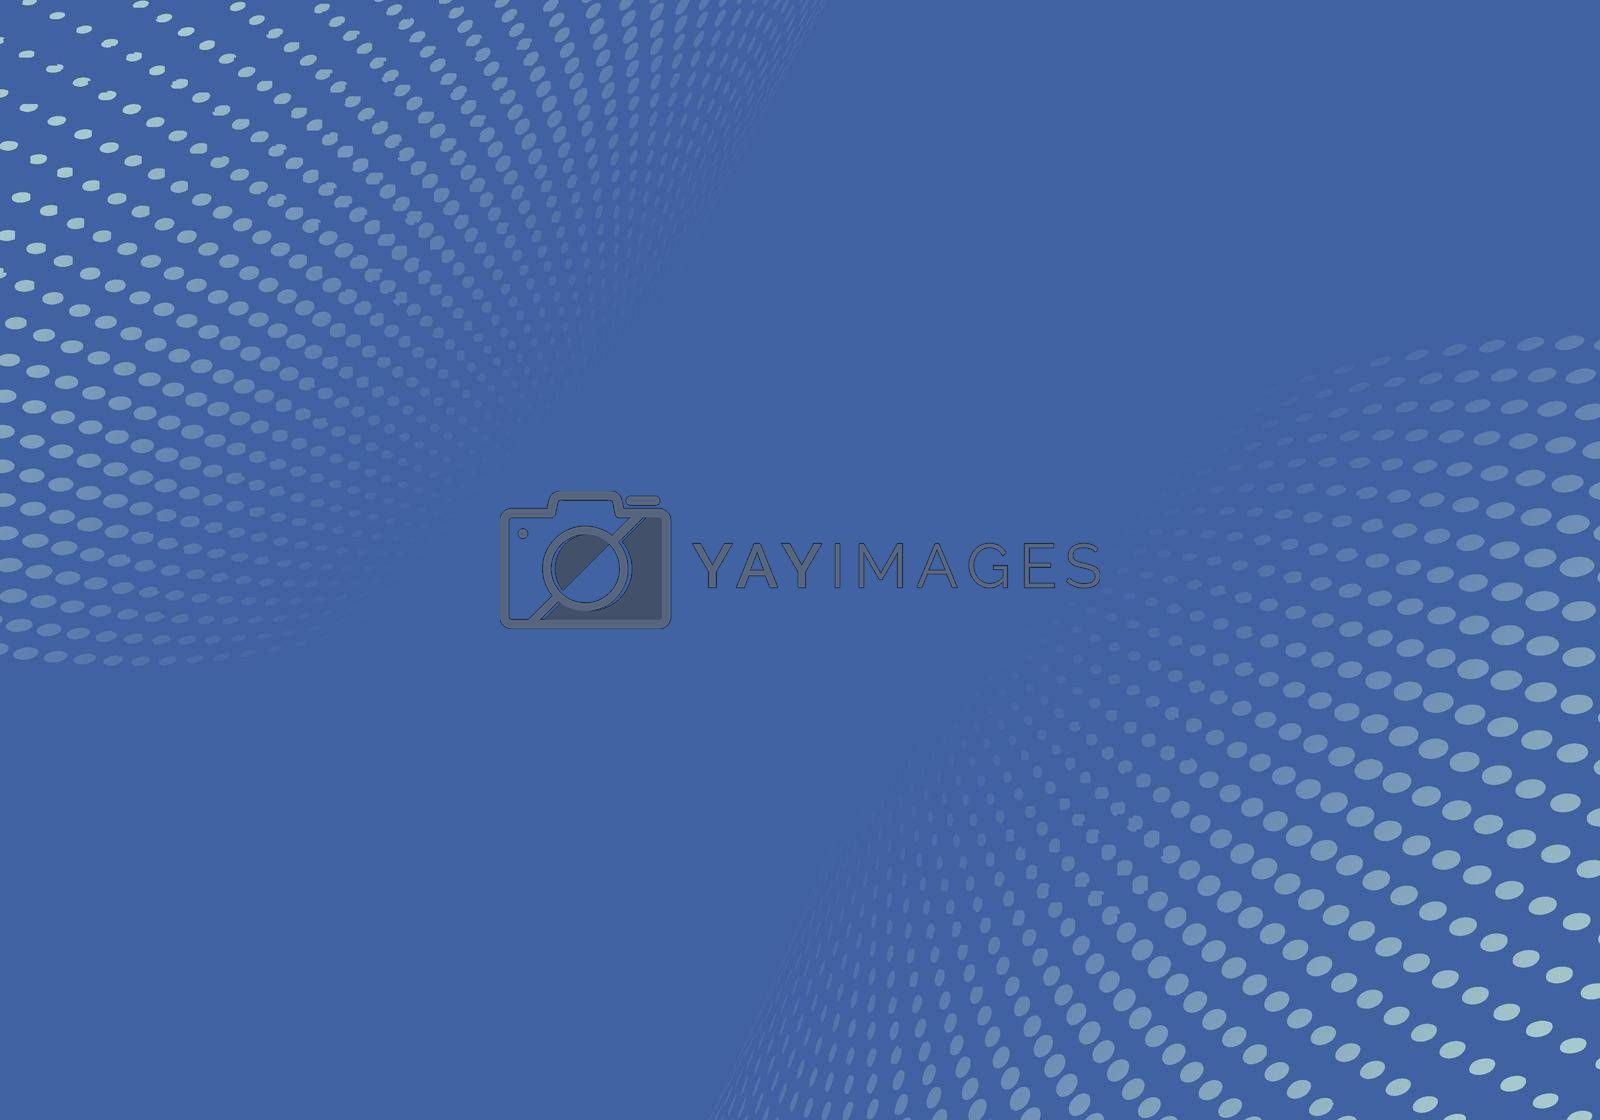 Abstract blue halftone dots pattern distortion perspective background and texture. Vector illustration